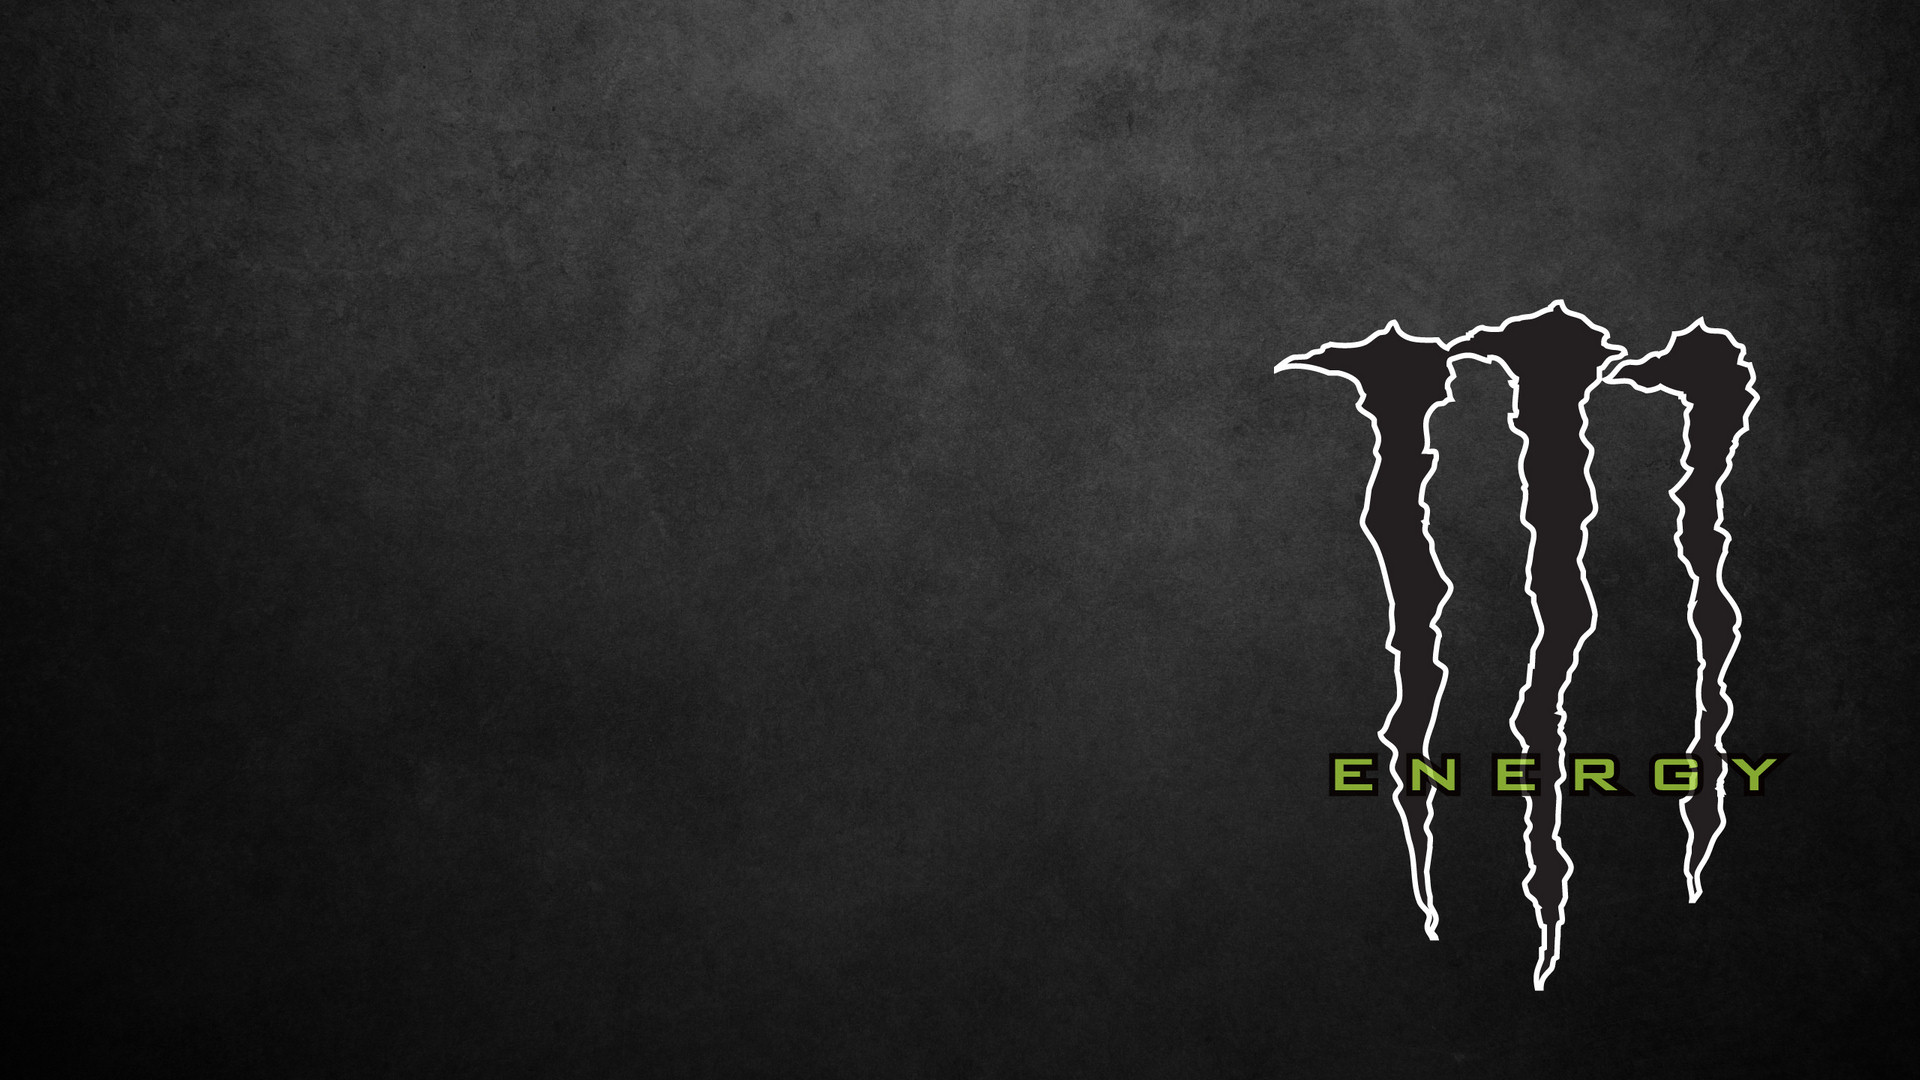 Black And White White Monster Logo Monster Energy Black White Energy 1920x1080